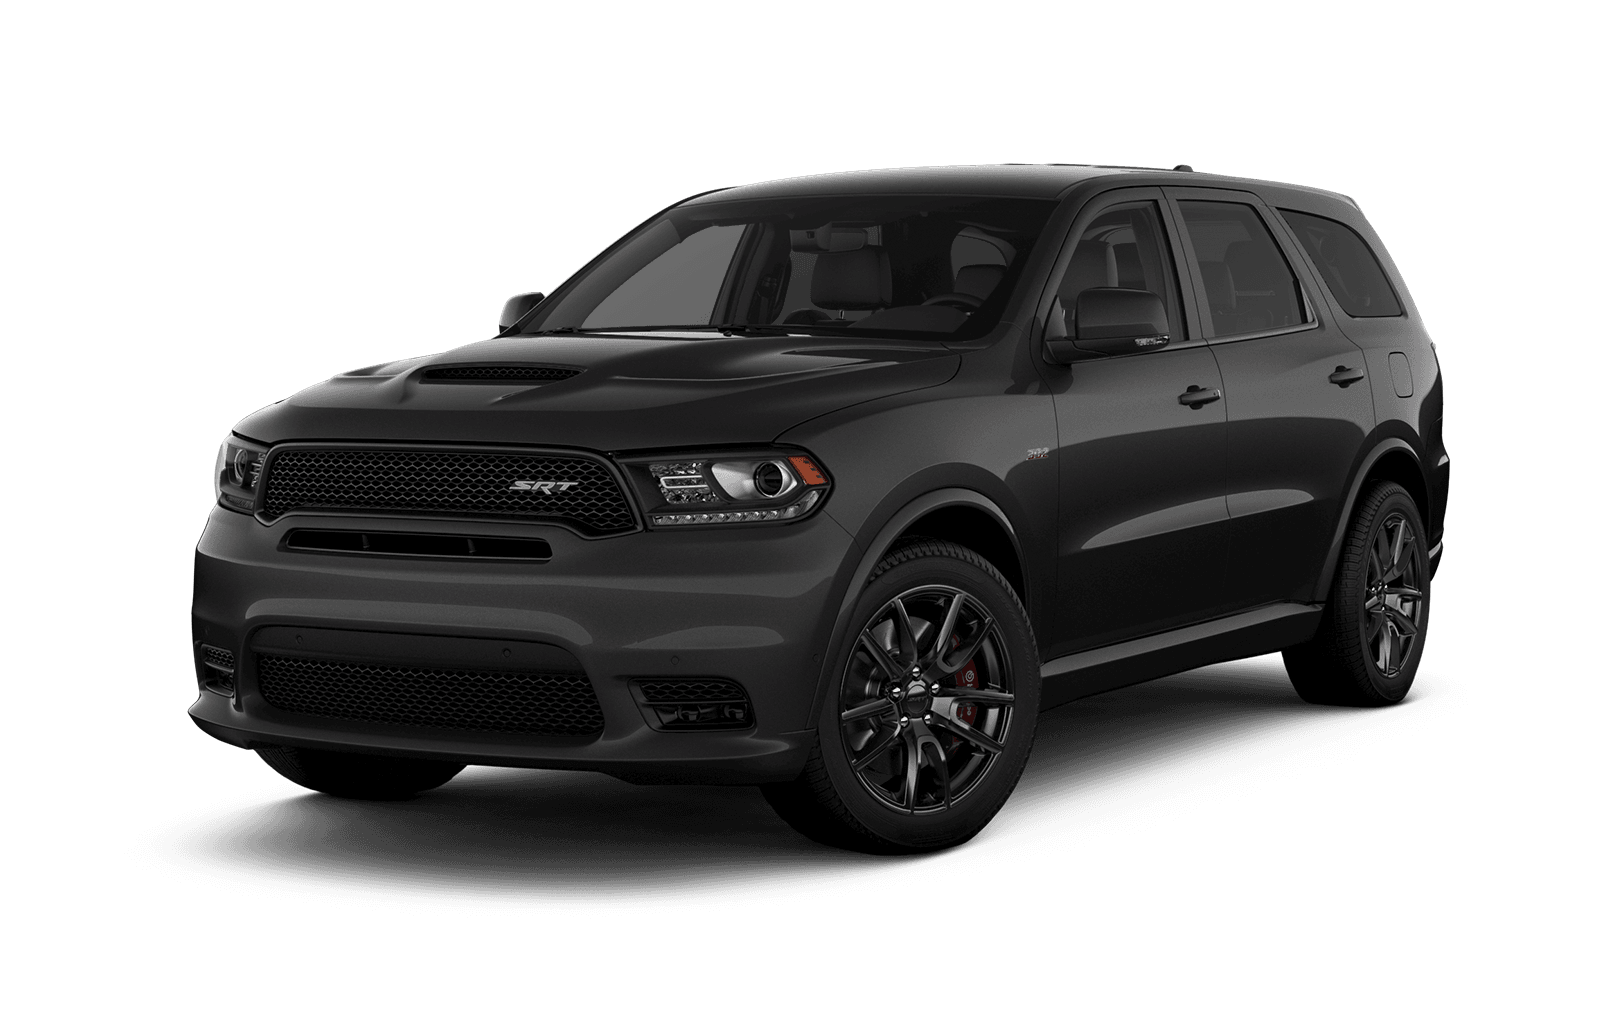 2019 Dodge Durango Full view in dark Grey